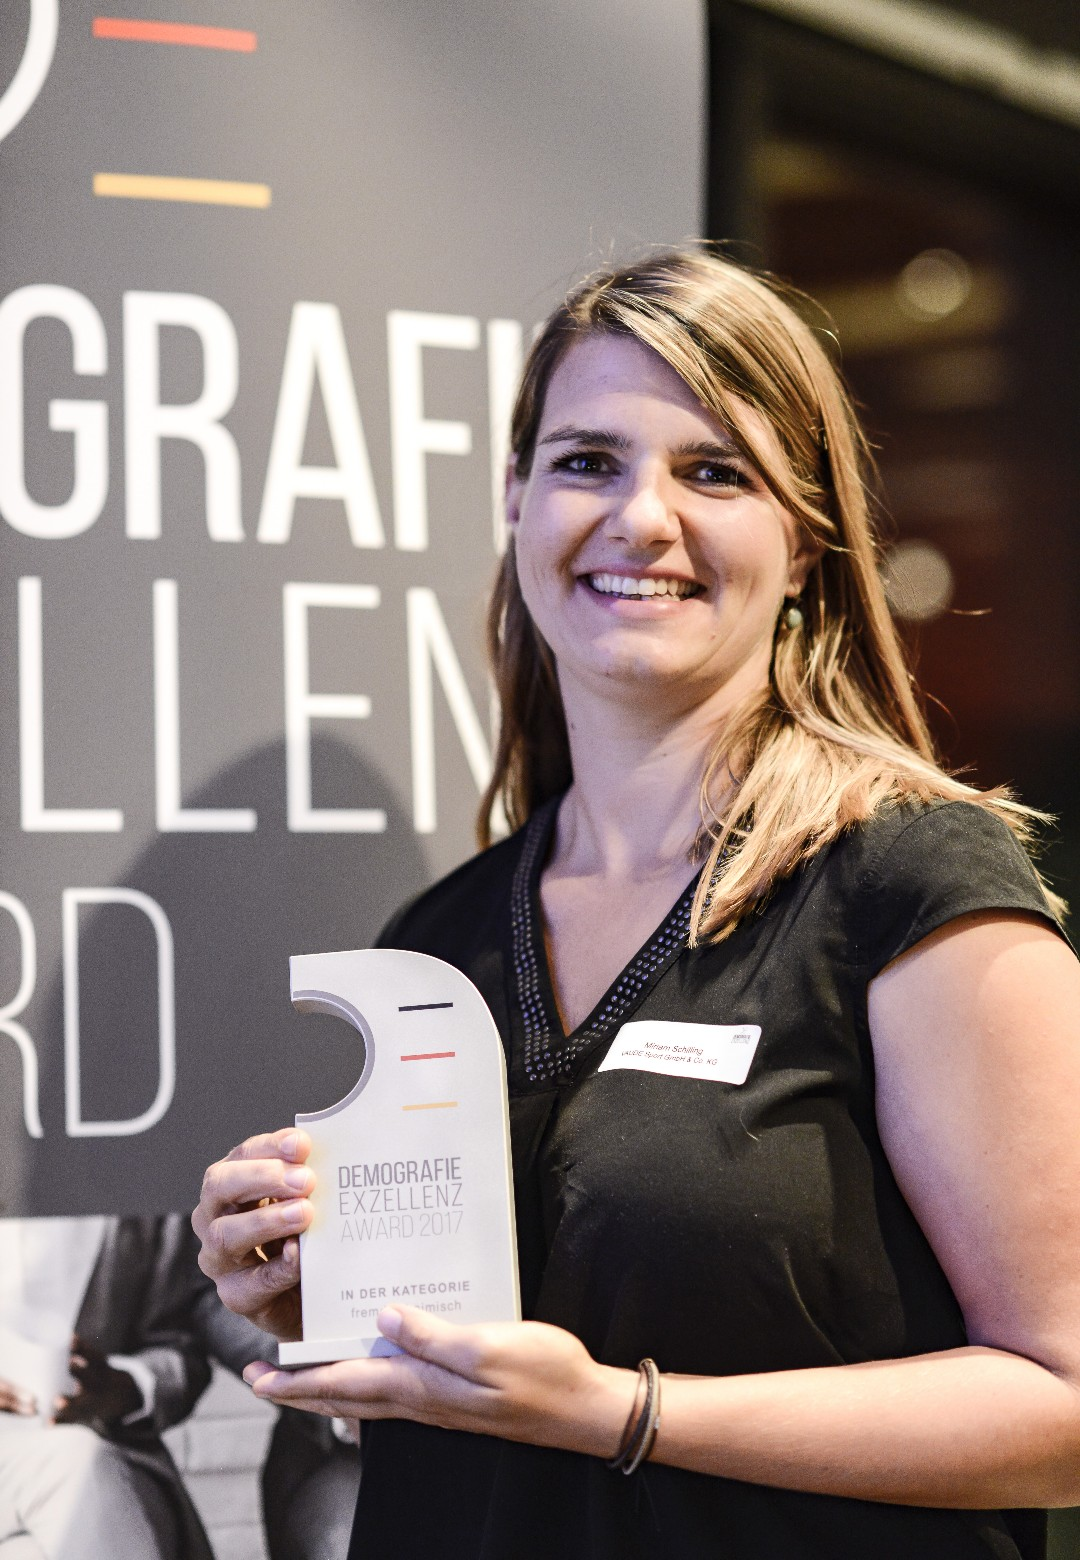 VAUDE Personnel Manager Miriam Schilling proudly accepted the award at the Hotel InterContinental in Berlin.